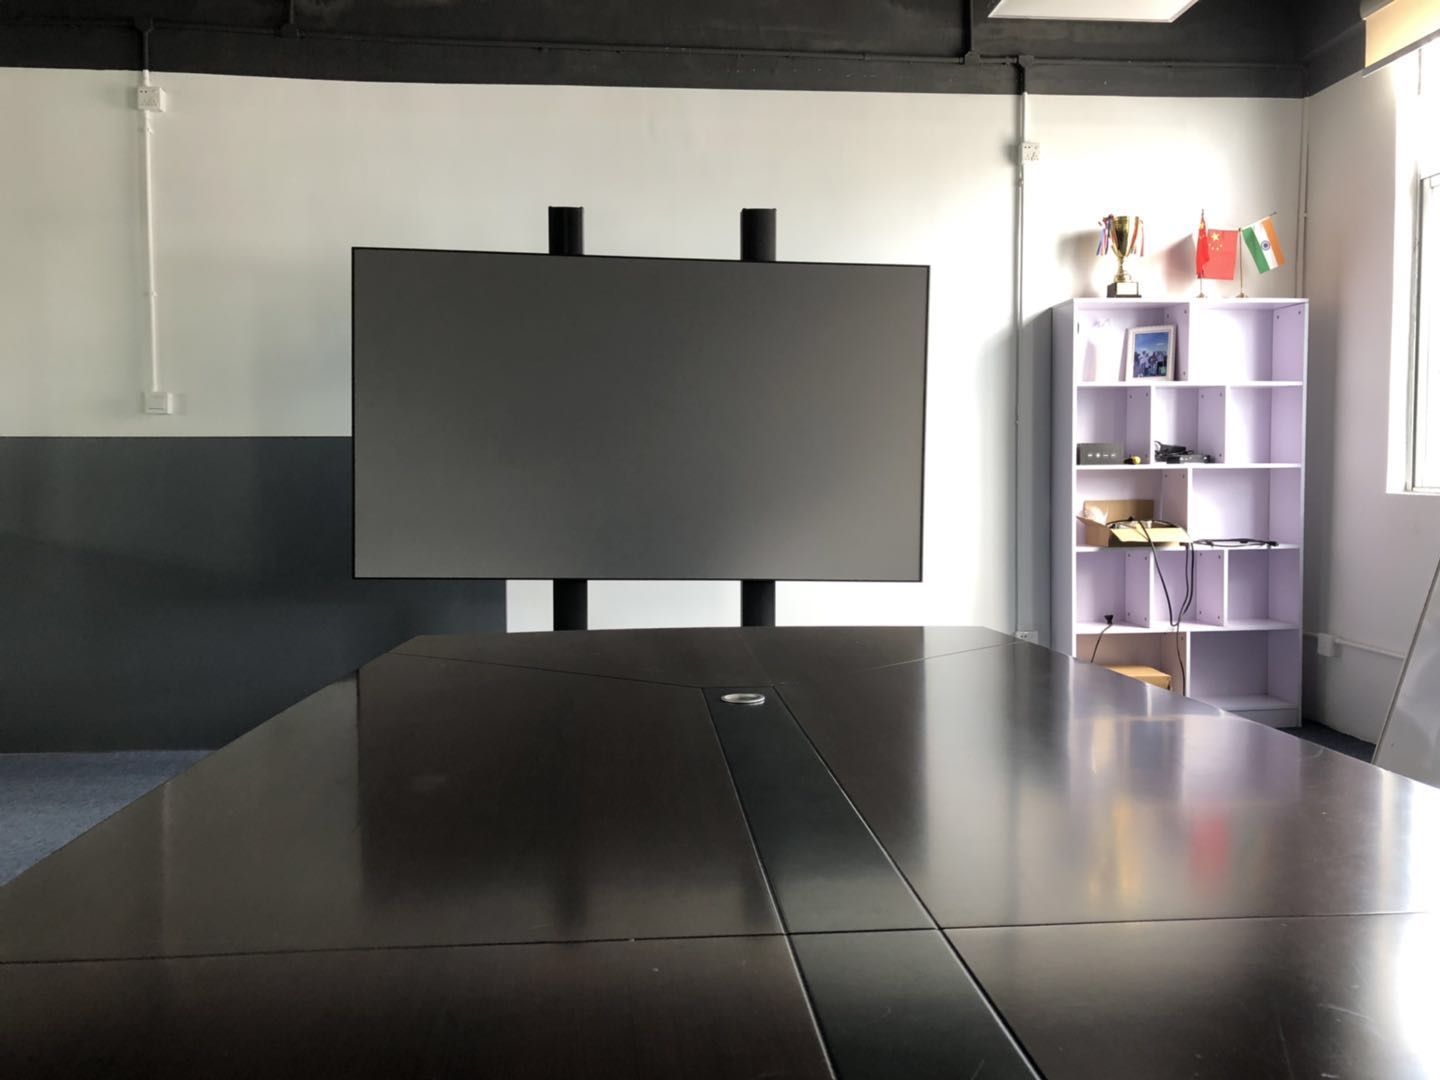 "FUTURE Screen 100"" 120"" PET Crystal projection Screen UST ALR with XGIMI Lune 4K large UHD Laser projector"